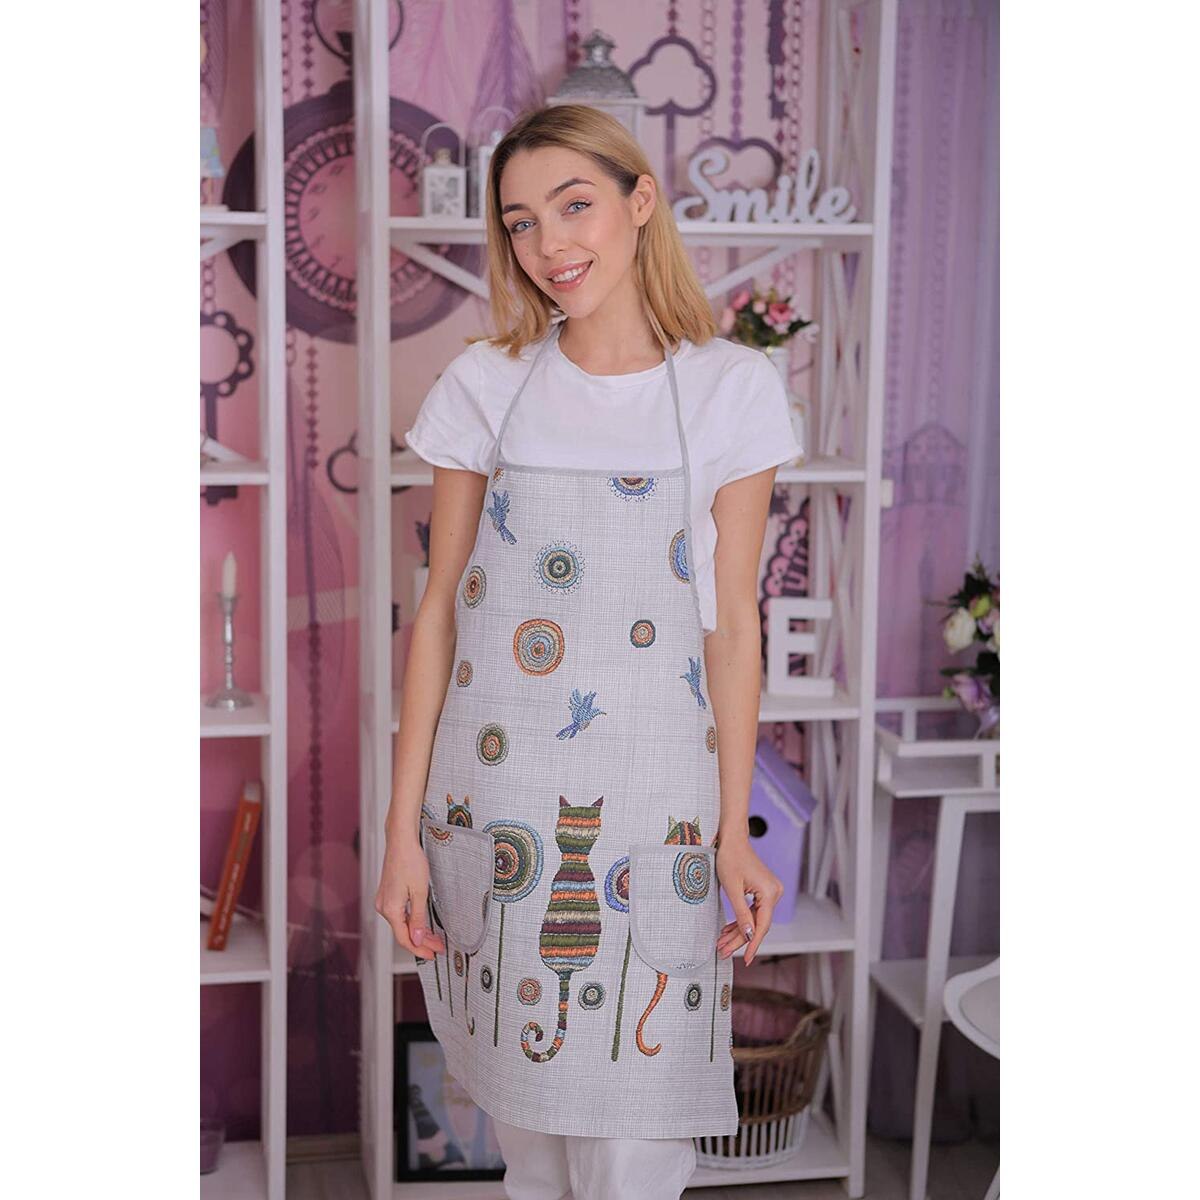 Cat Apron for Women with Pockets - Cute Kitchen Cotton Linnen Apron - Home Chef Cat Kitchen Accessories - Cooking Apron Embroidery Look